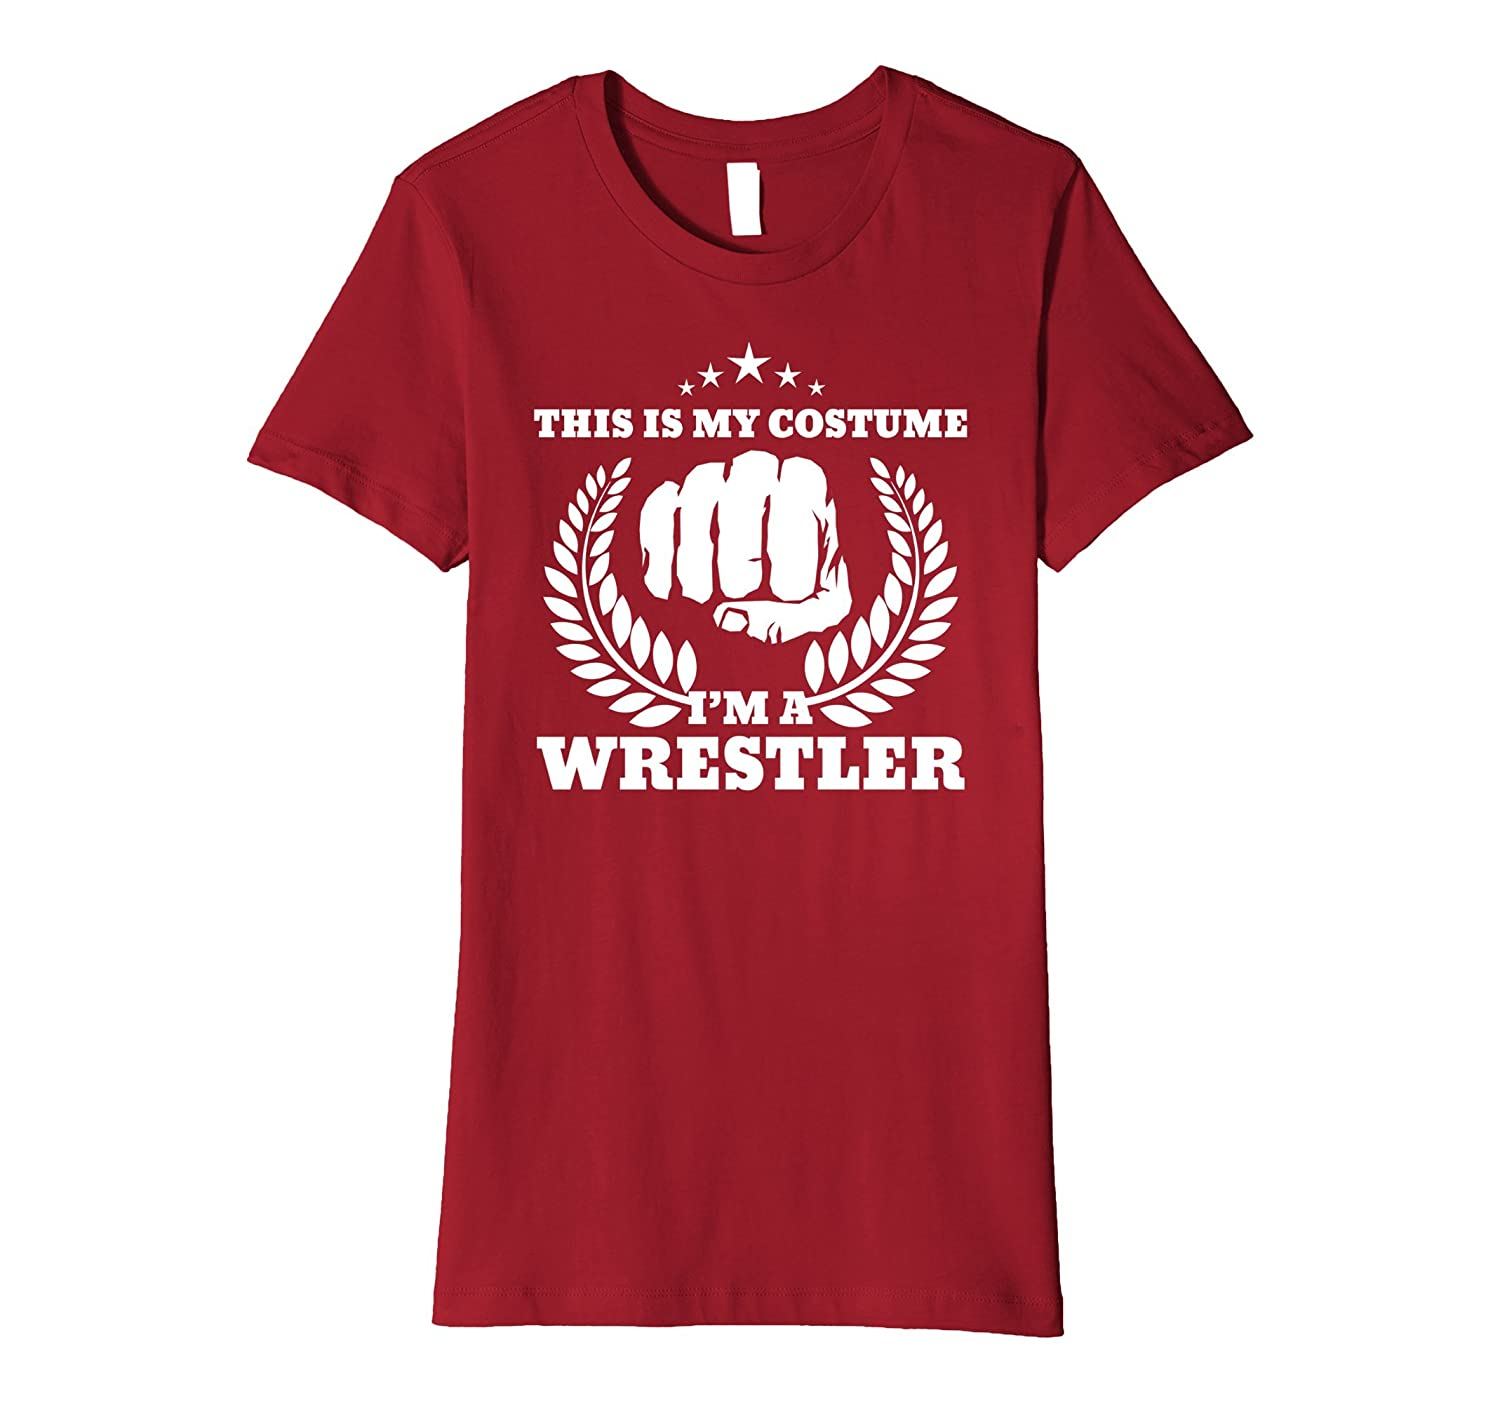 This Is My Costume I'm A Wrestler T-shirt - Men Women Youth